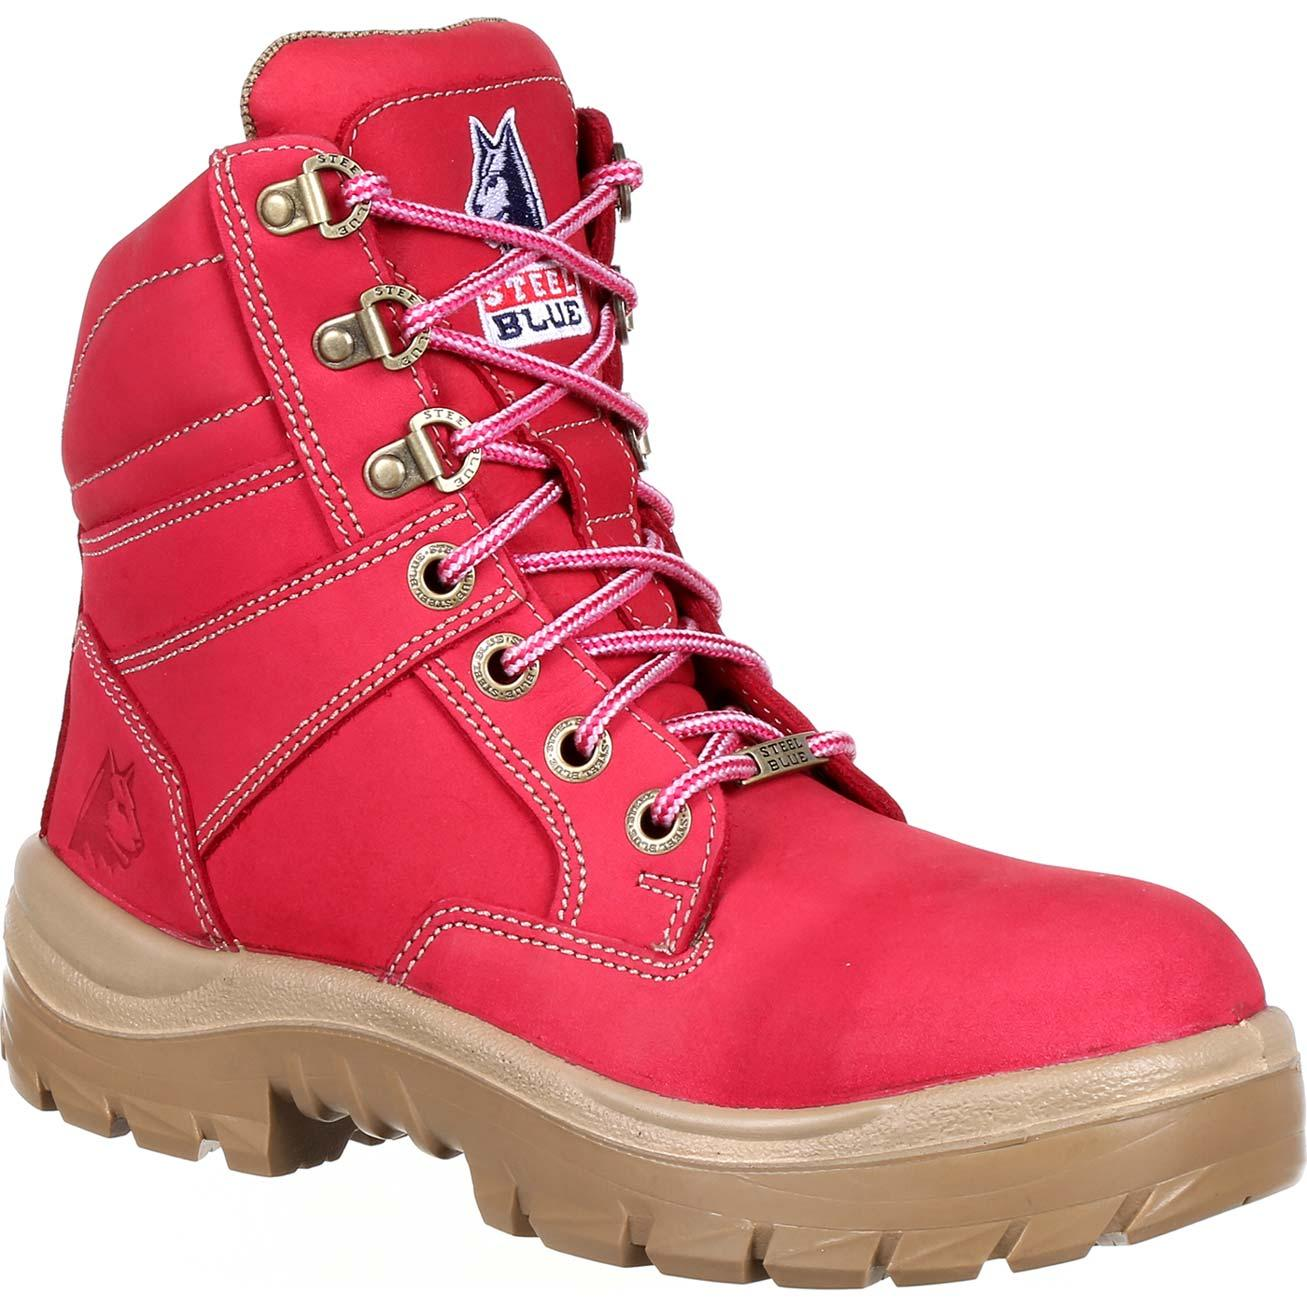 398302a8980 Steel Blue Southern Cross Women's Steel Toe Static-Dissipative Work Boot